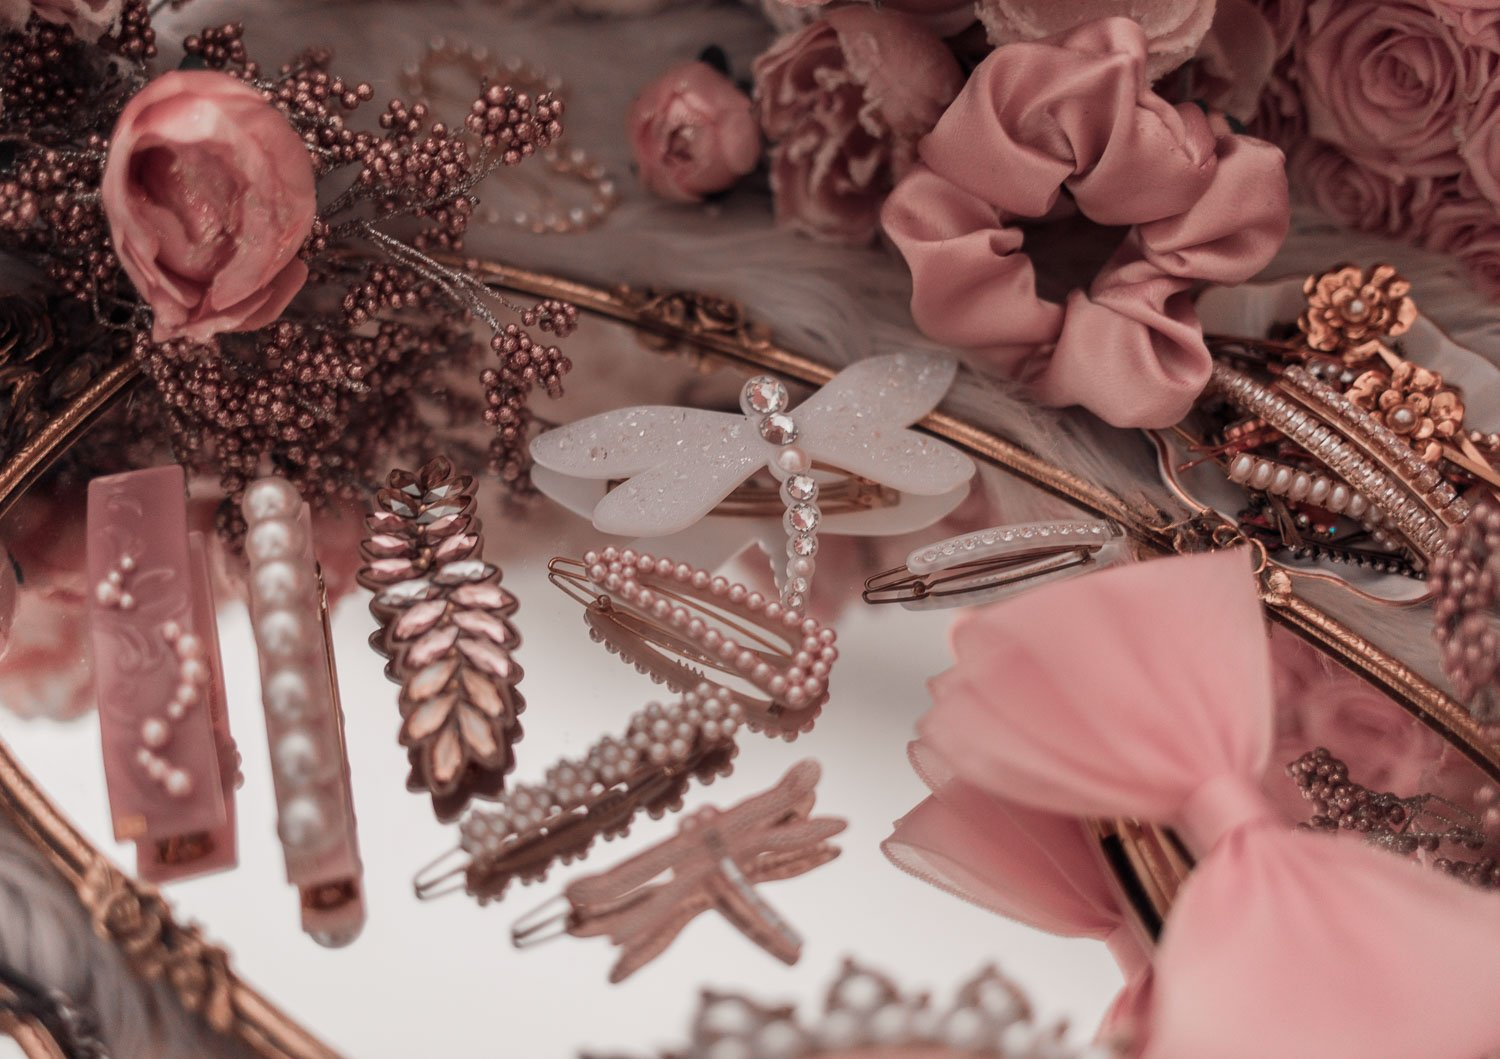 Feminine Fashion Blogger Elizabeth Hugen of Lizzie in Lace shares her girly hair accessories collection